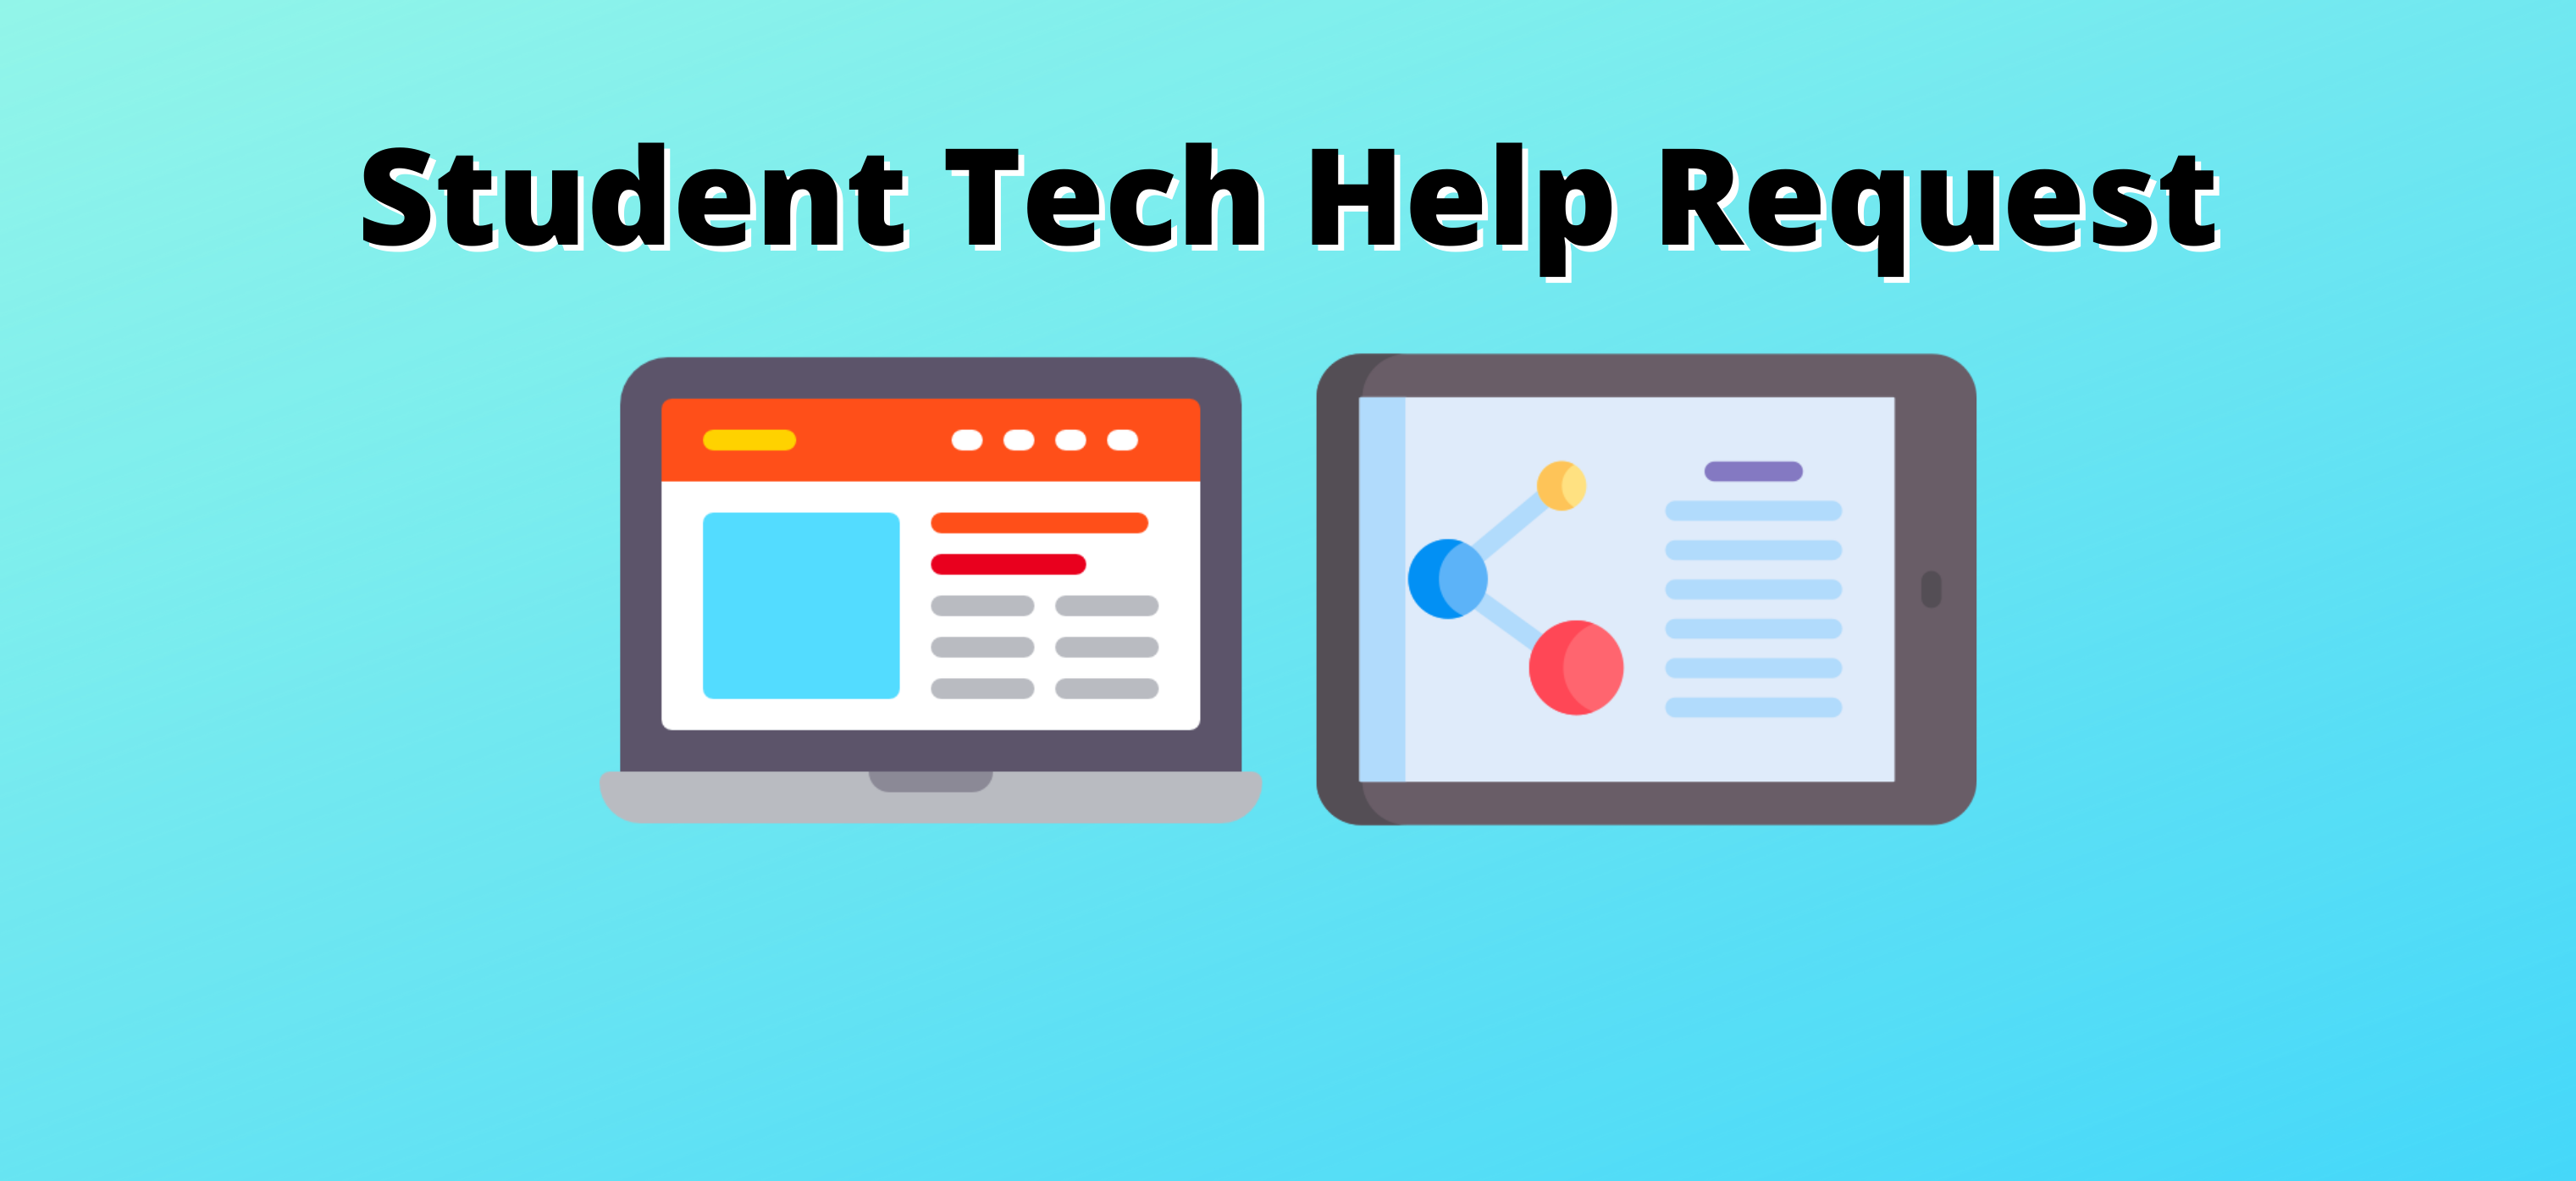 Get help with technology issues!